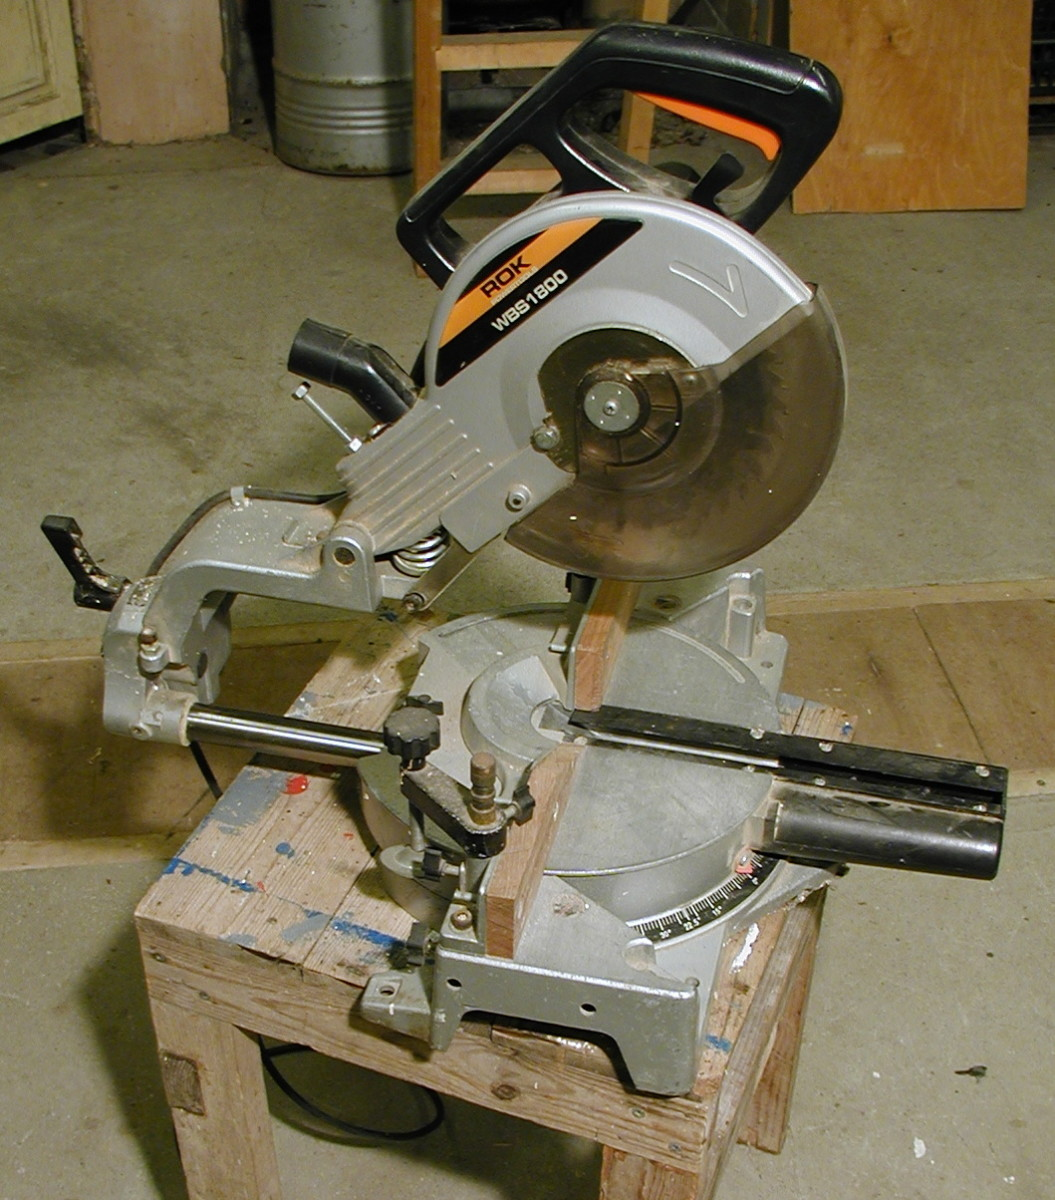 A mitre saw can make 90 degree square, and angled (mitred) cuts in timber.